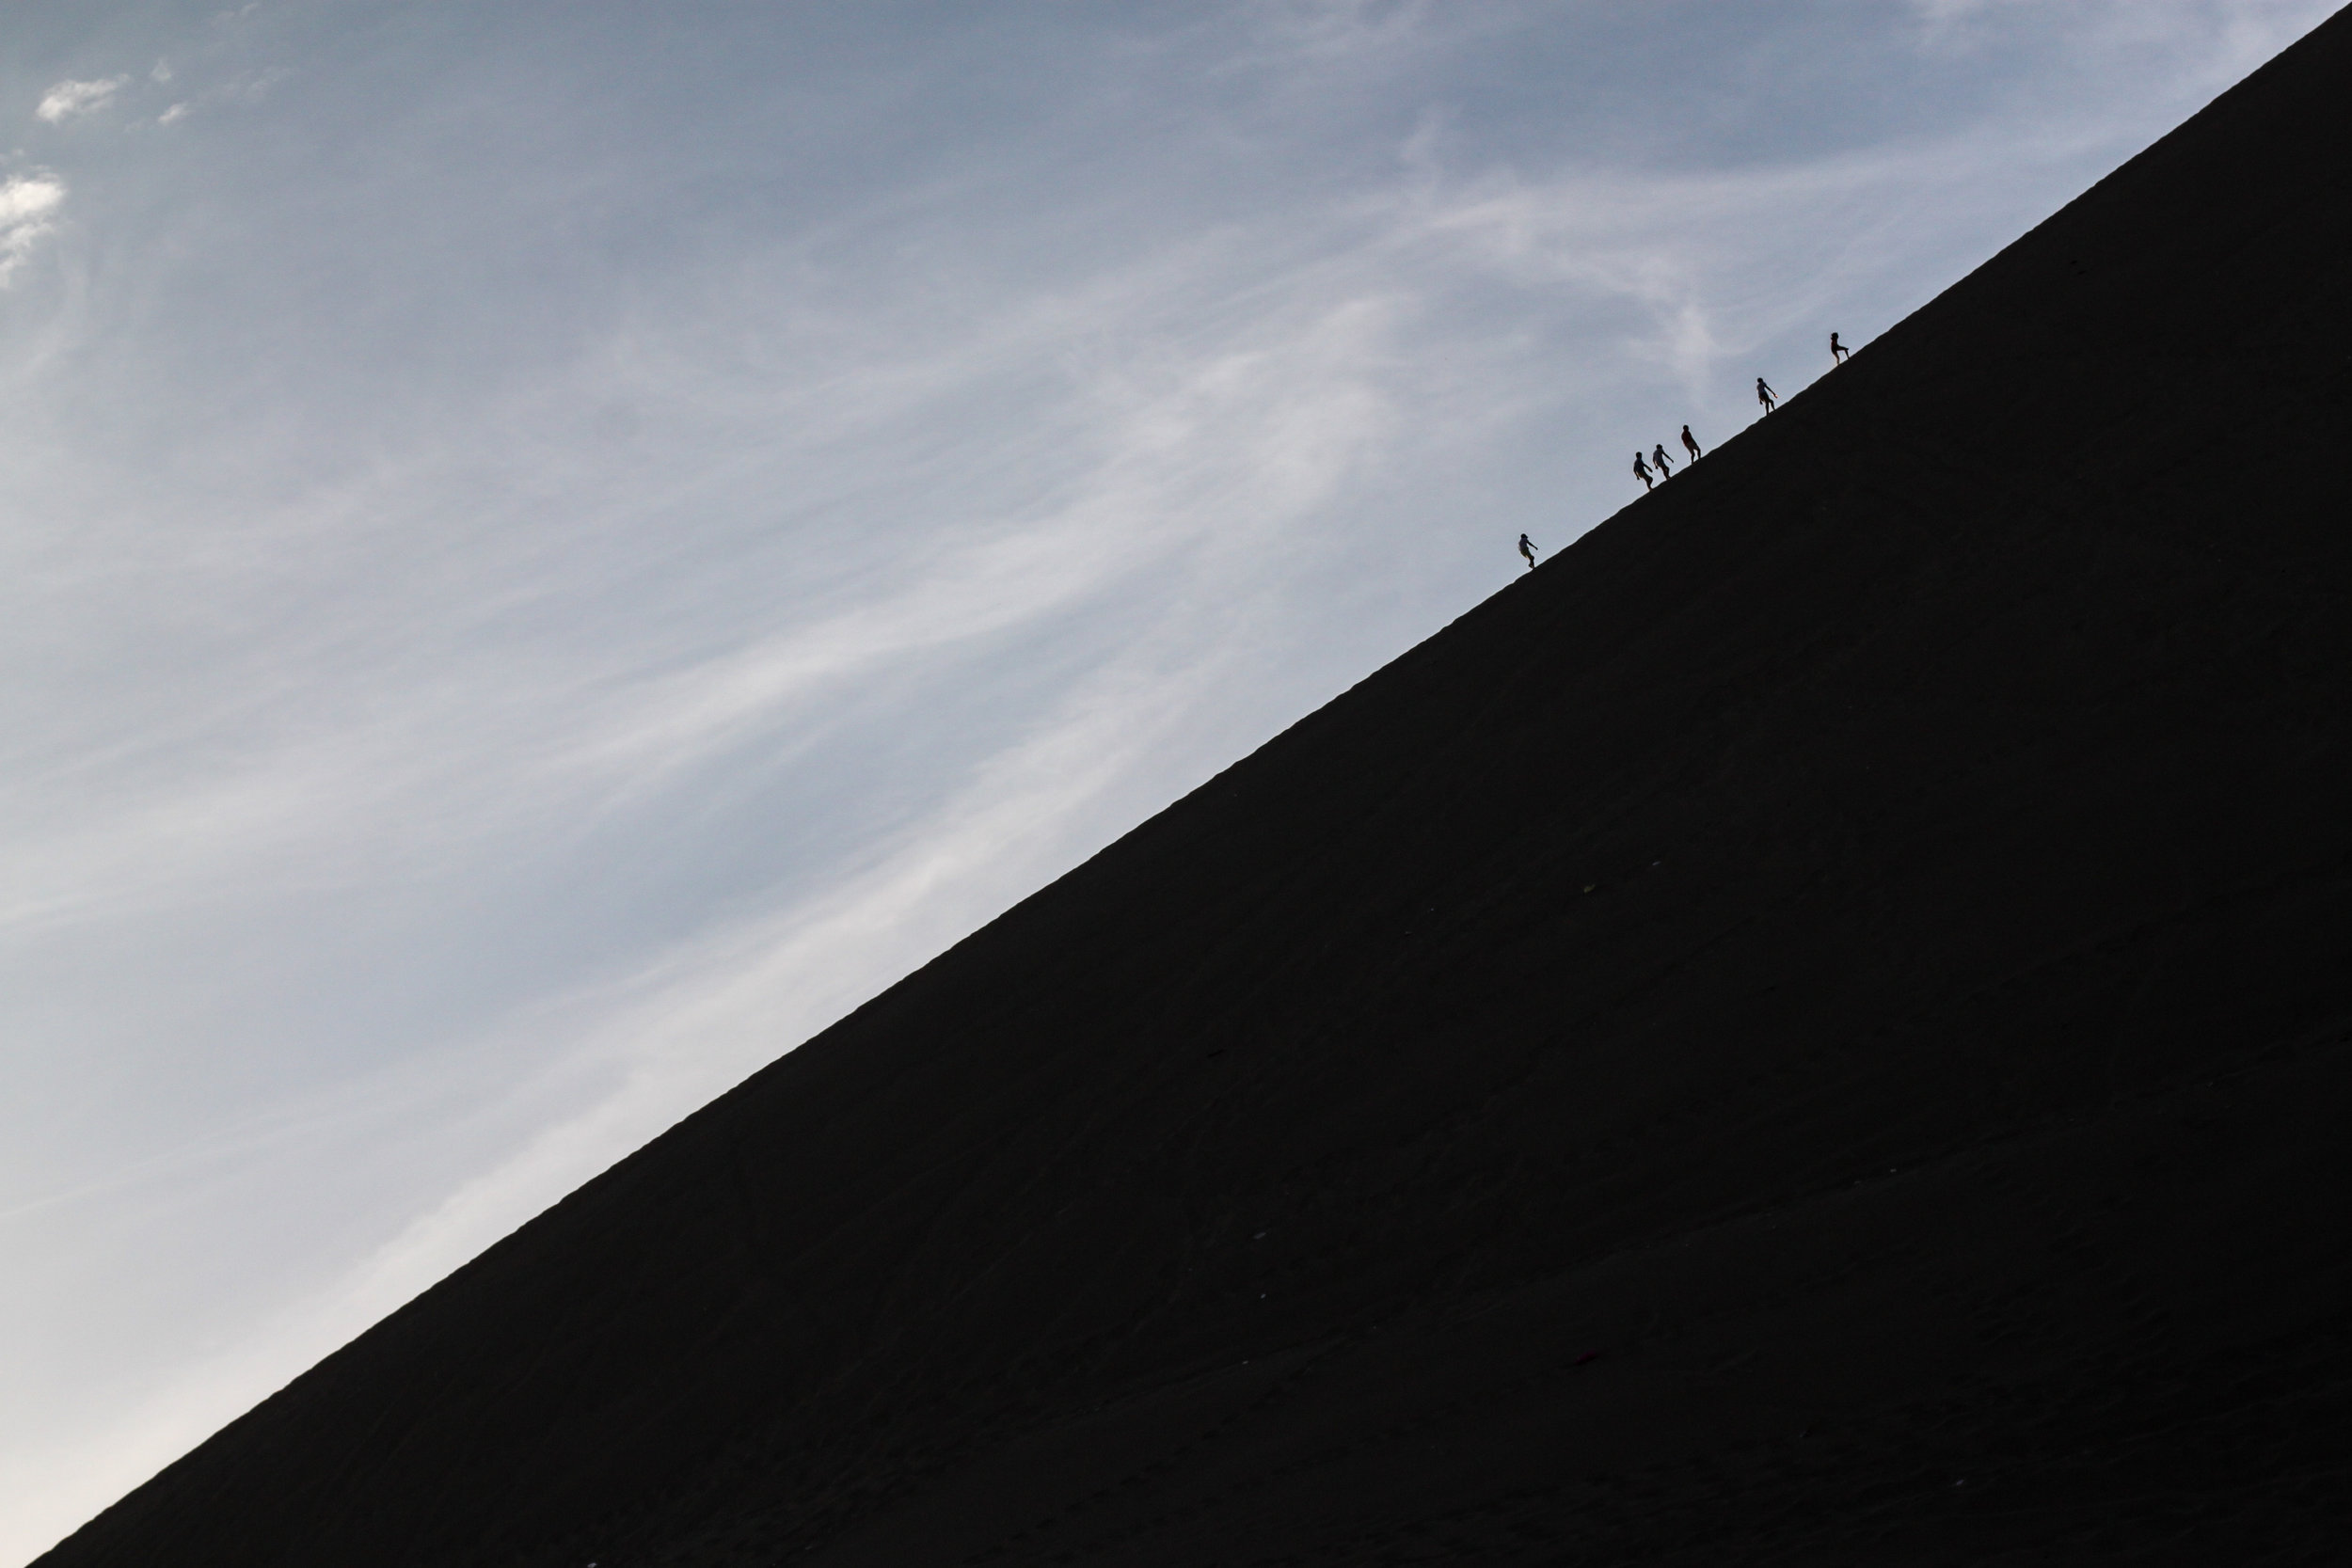 Silhouette travel photography in Ica, Peru by Geraint Rowland.